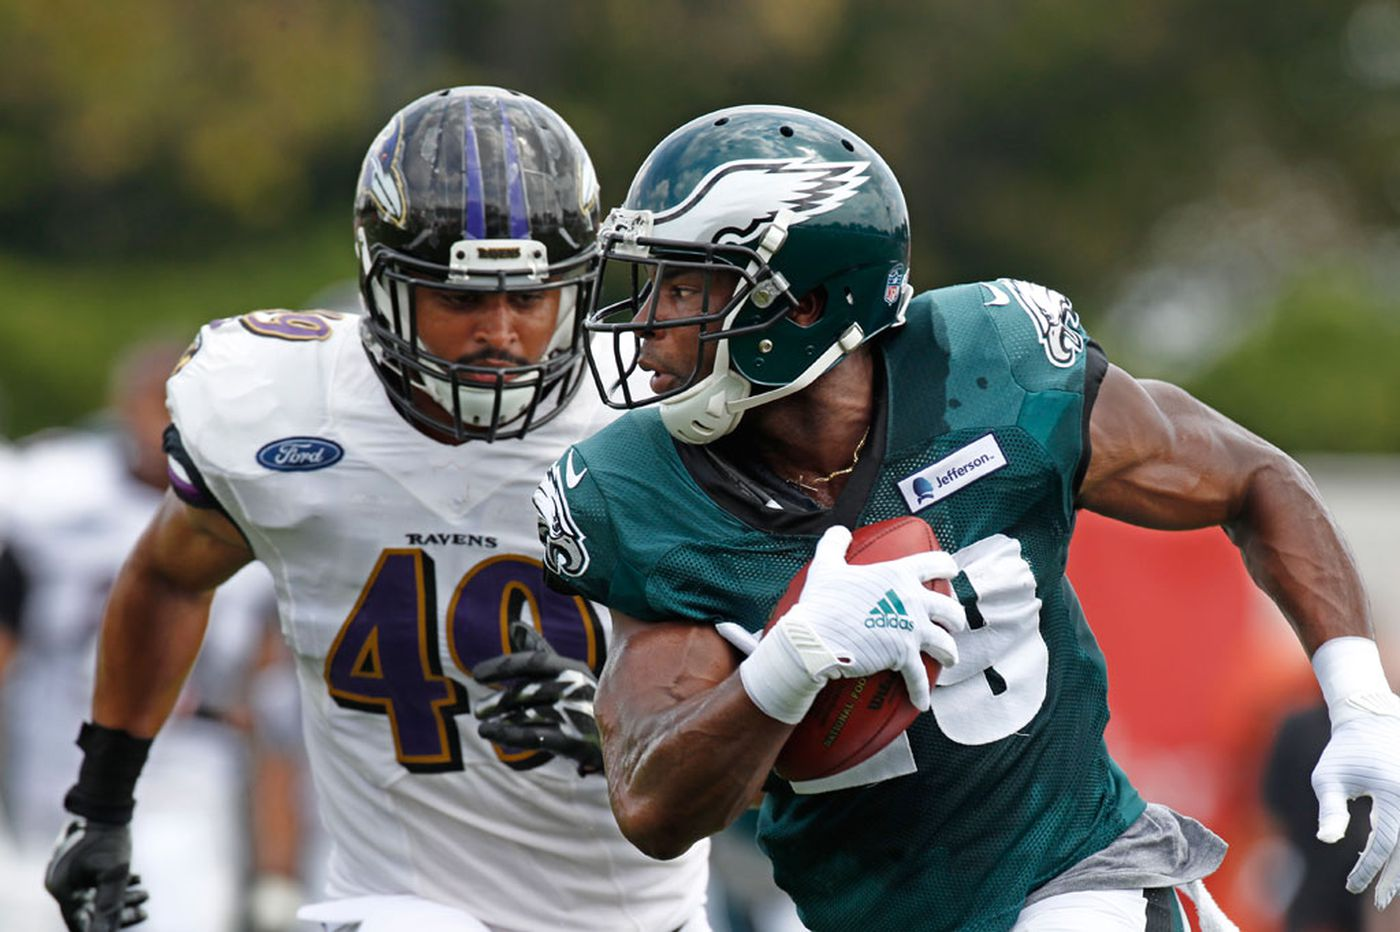 Eagles to have intersquad practices with Baltimore Ravens during training camp